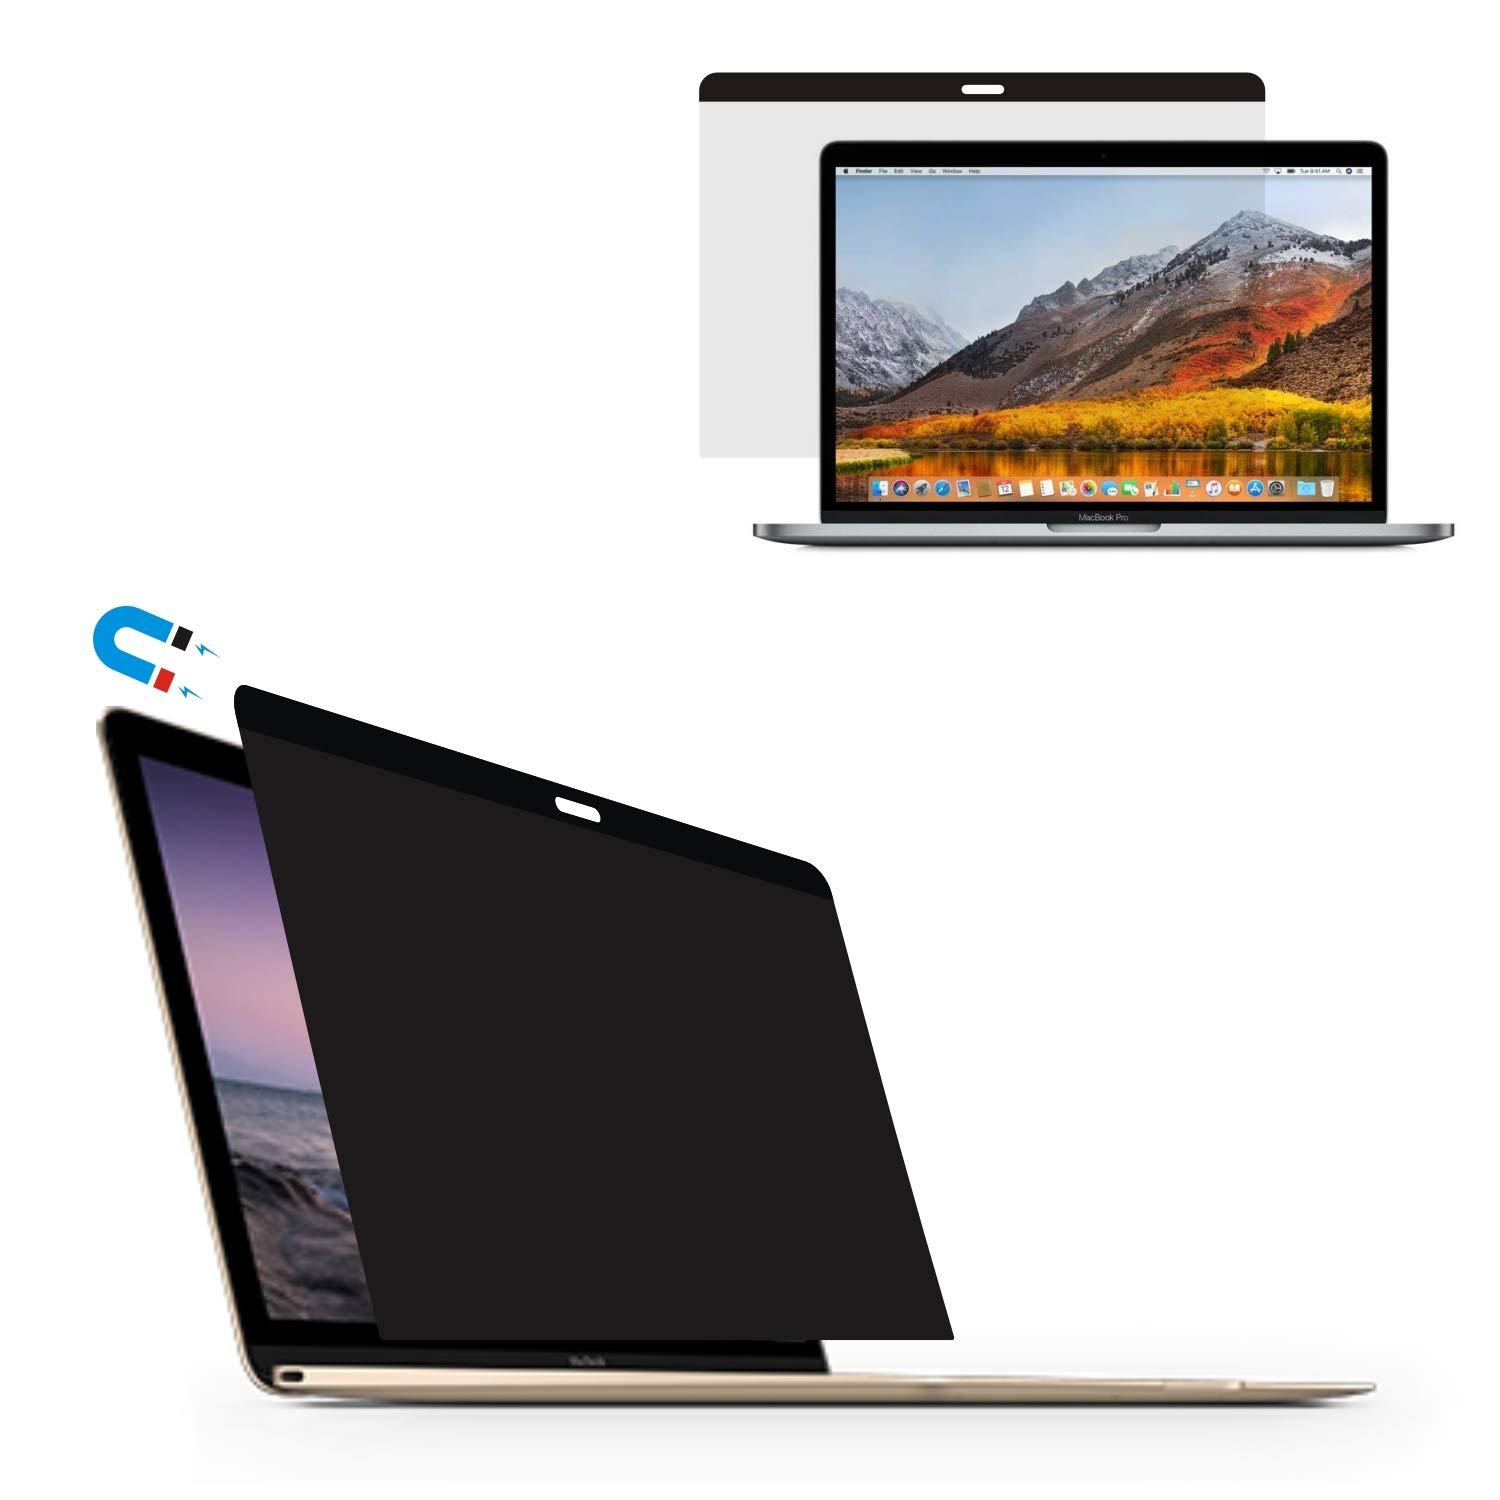 Accgonon Automatic Adsorption Laptop Privacy Screen Protectors Filter for MacBook Pro 13-inch (2012-mid 2015 Version,Model:A1502 and A1425) Anti-Glare Anti-Spy Scratch and UV Protection Easy On/Off